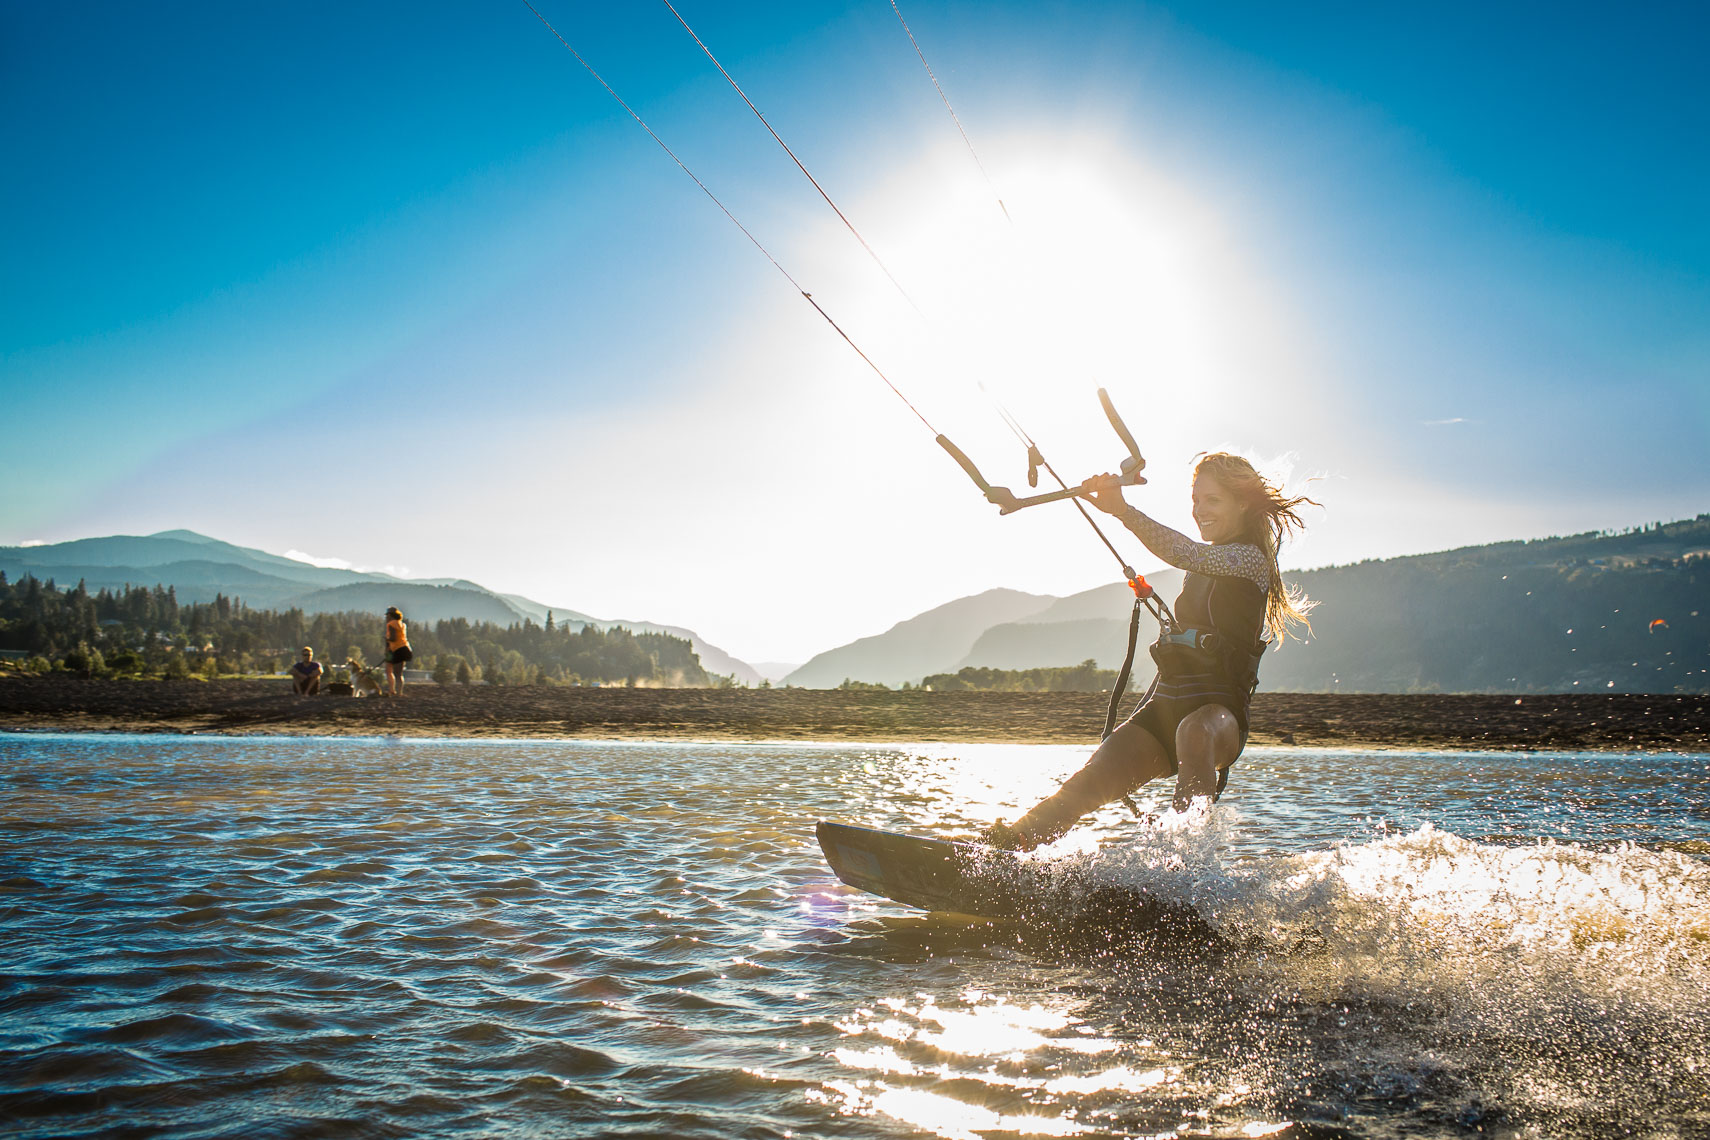 Kite Surfing on the Columbia River in Oregon